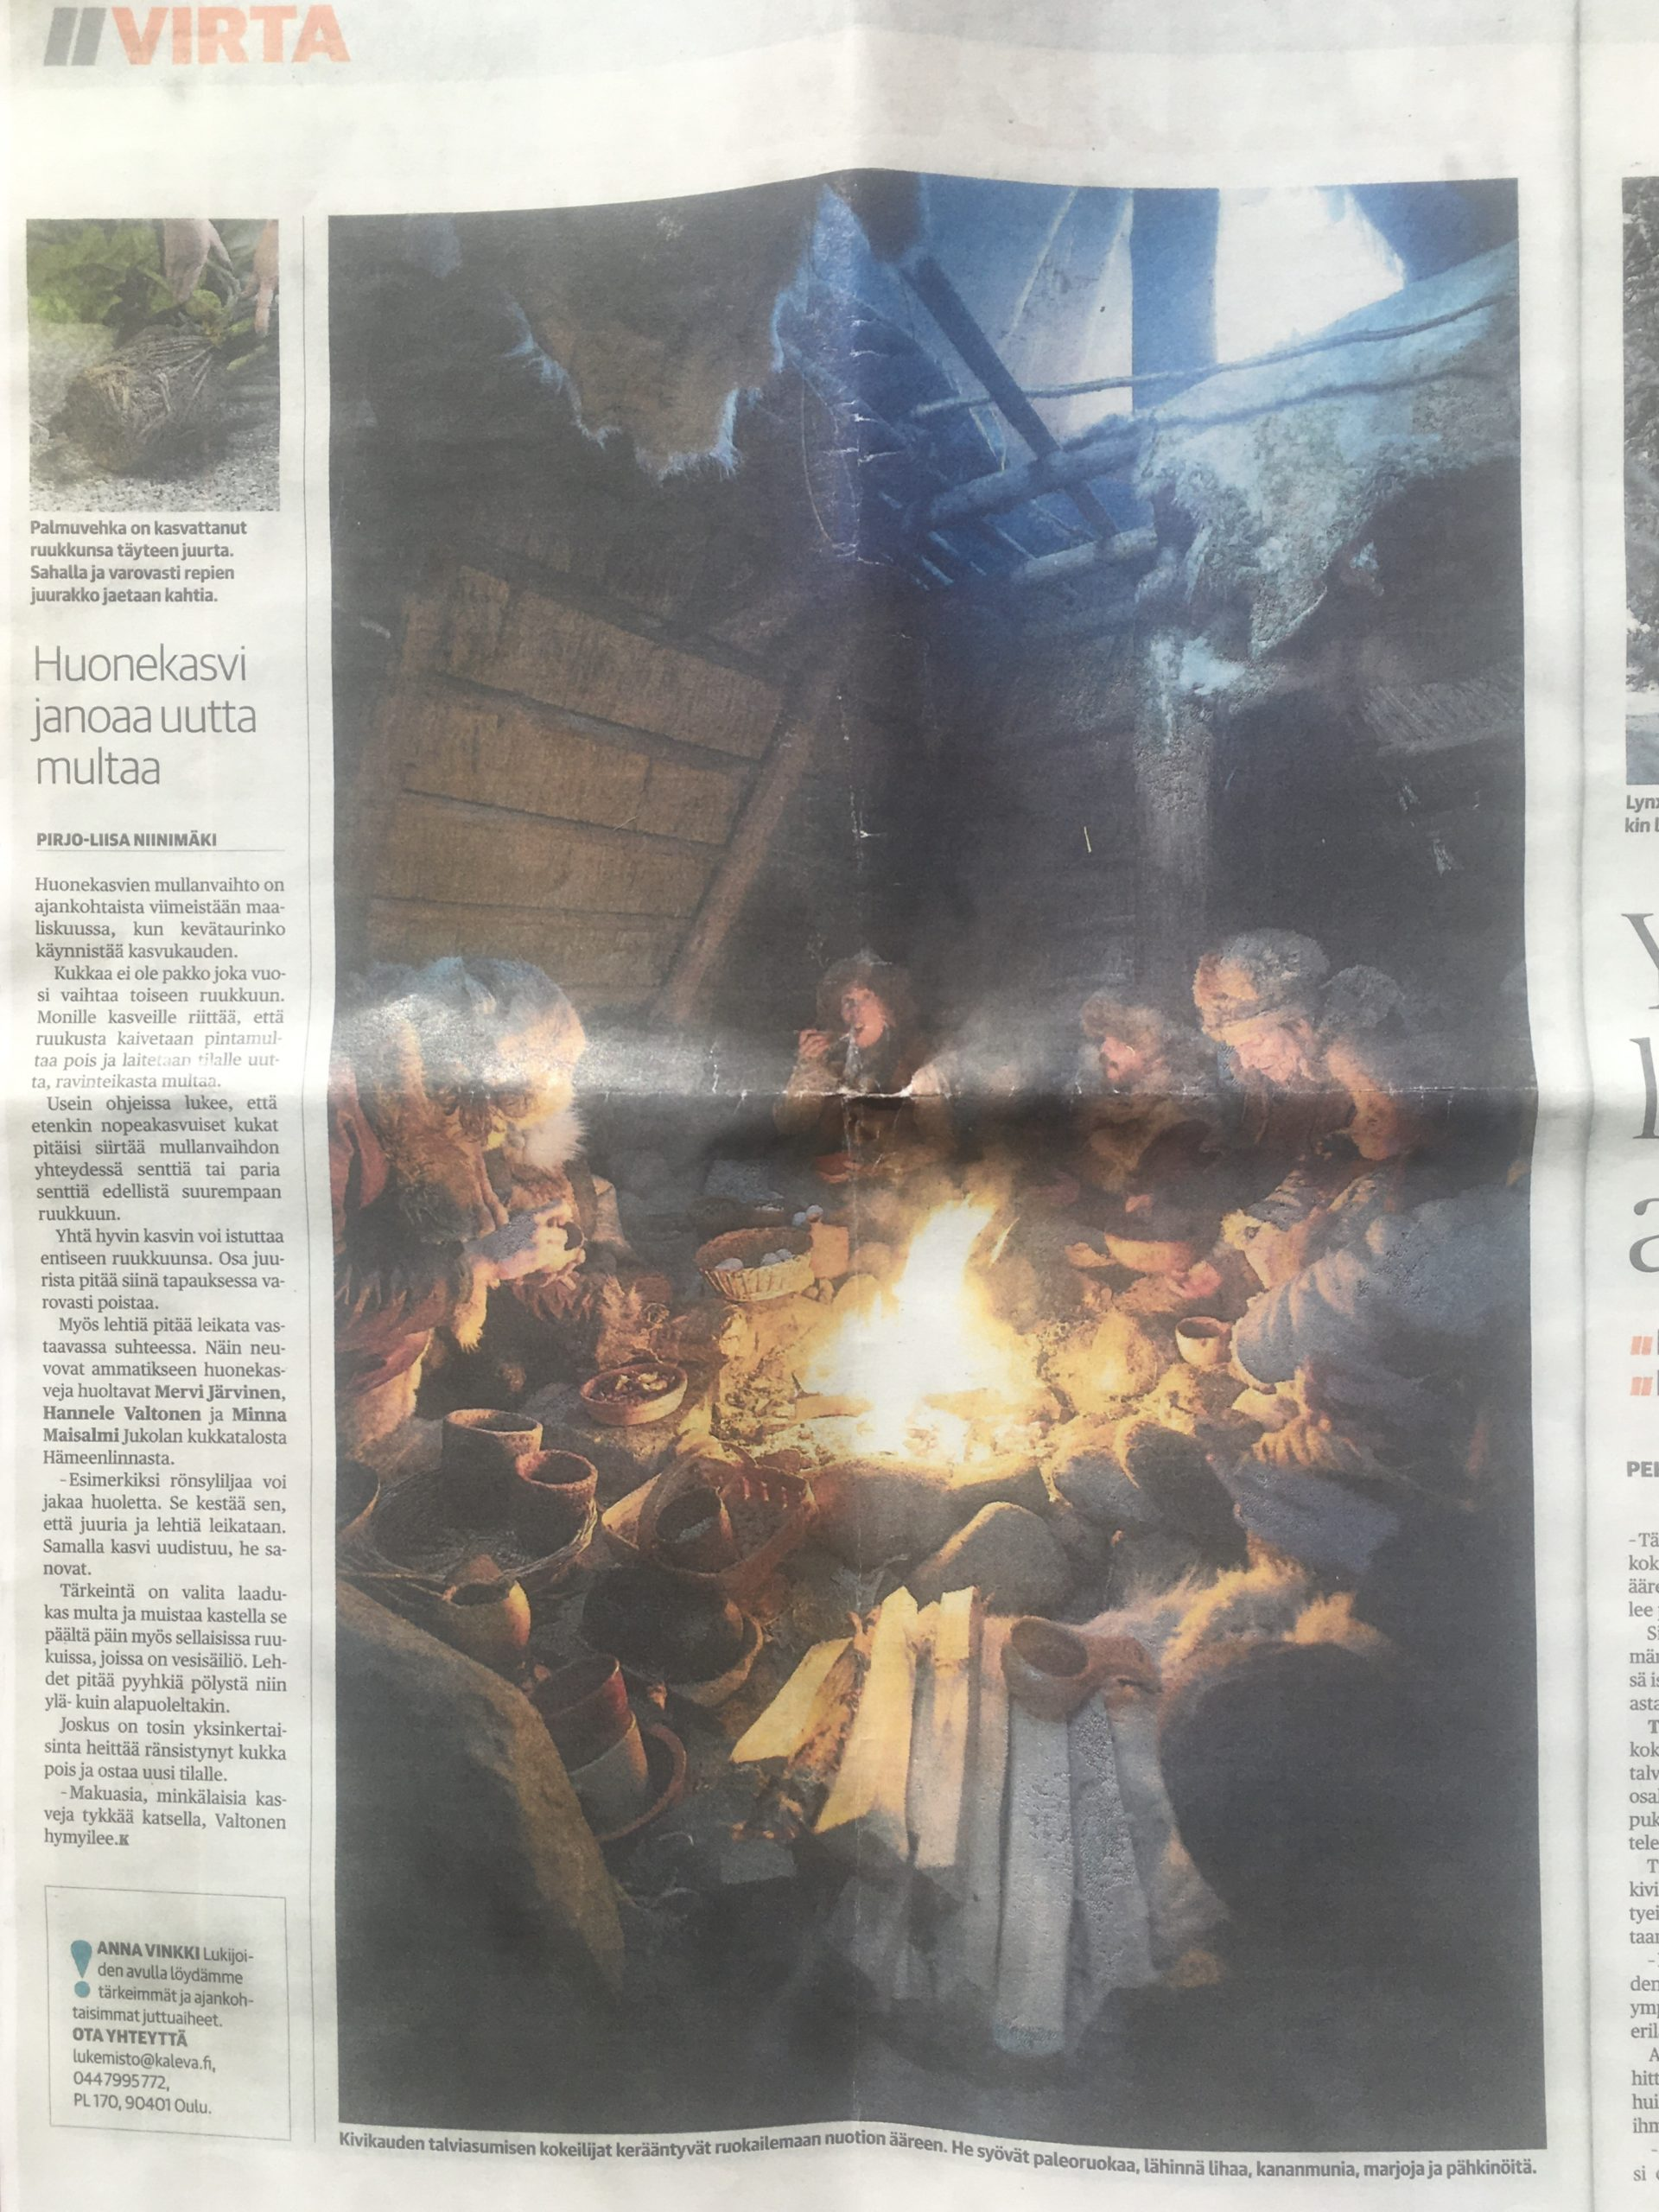 Media appearance of stone age group in Kaleva's newspaper